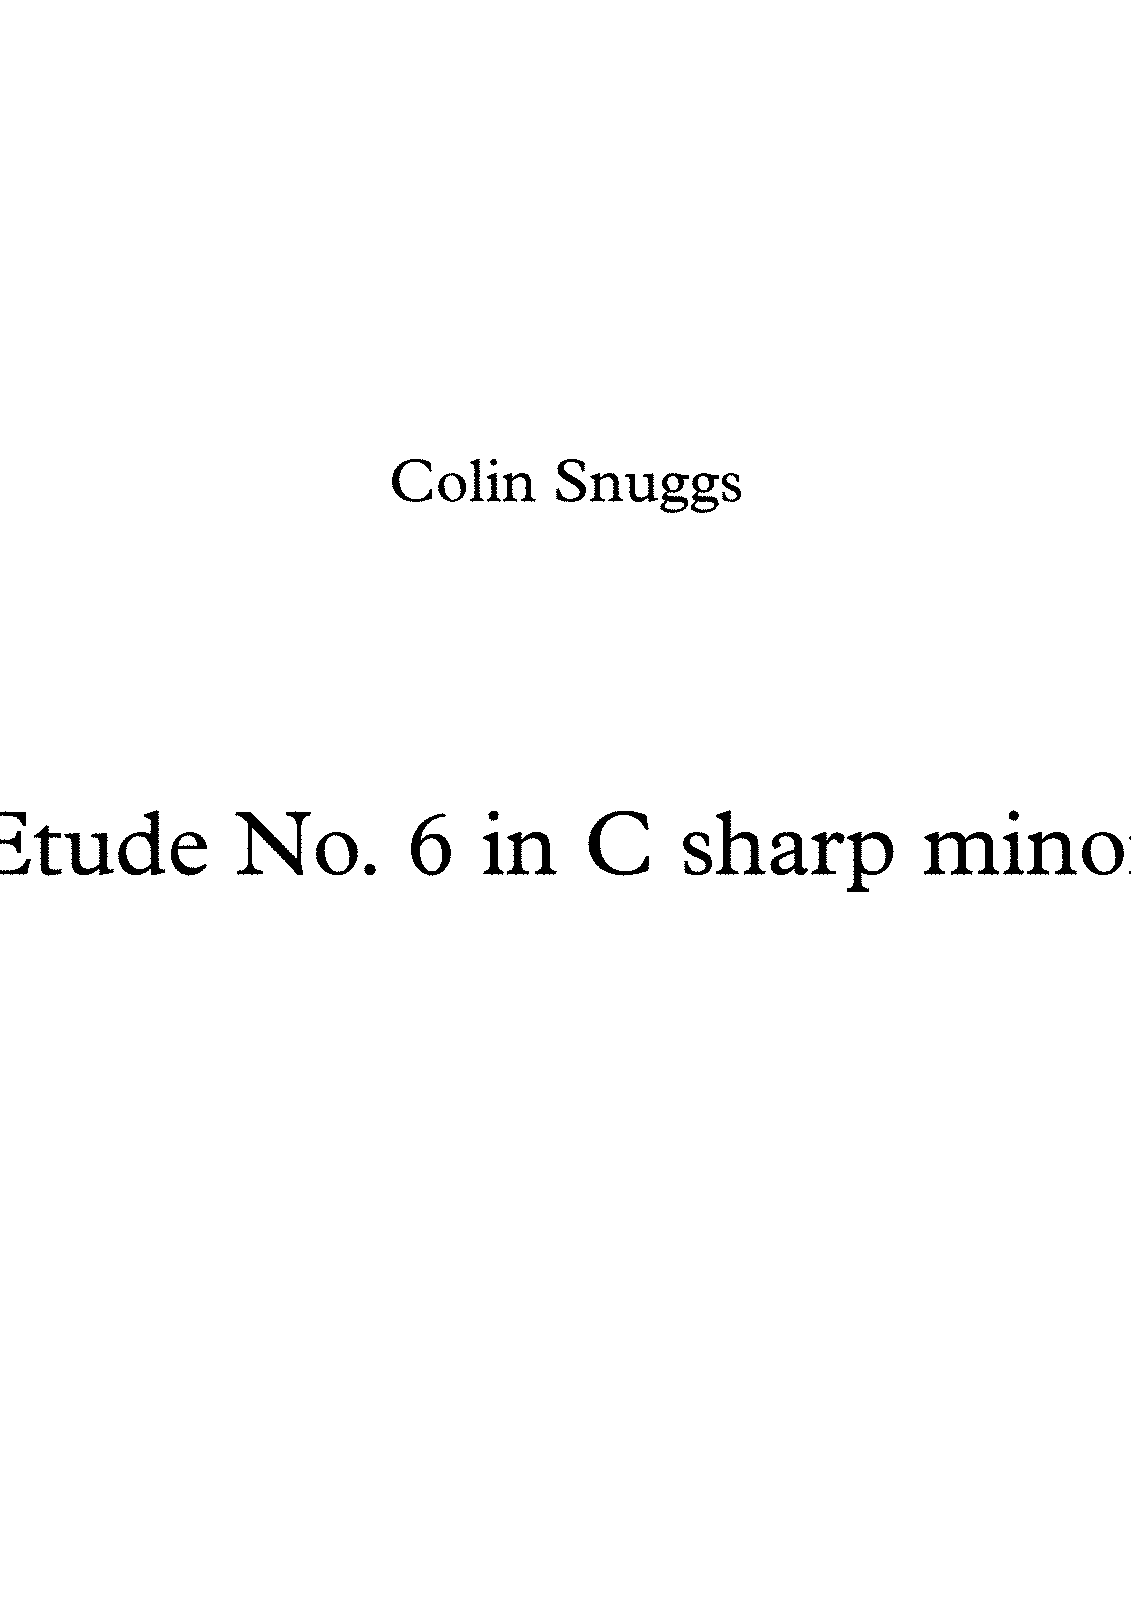 PMLP457748-Etude No 6 in C sharp minor 4 5.pdf